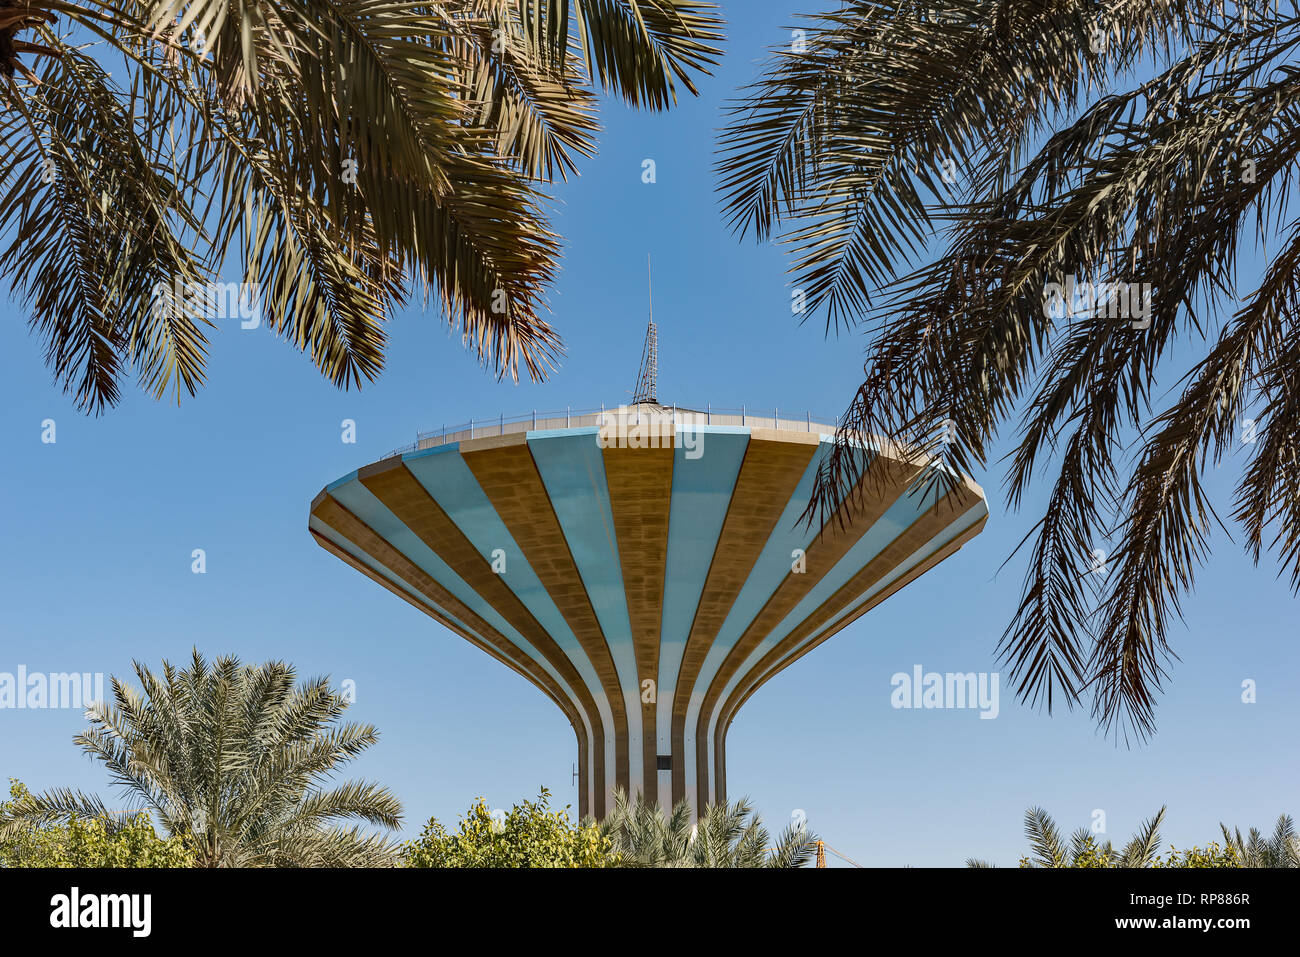 A Riyadh Water Tower Immagini Stock